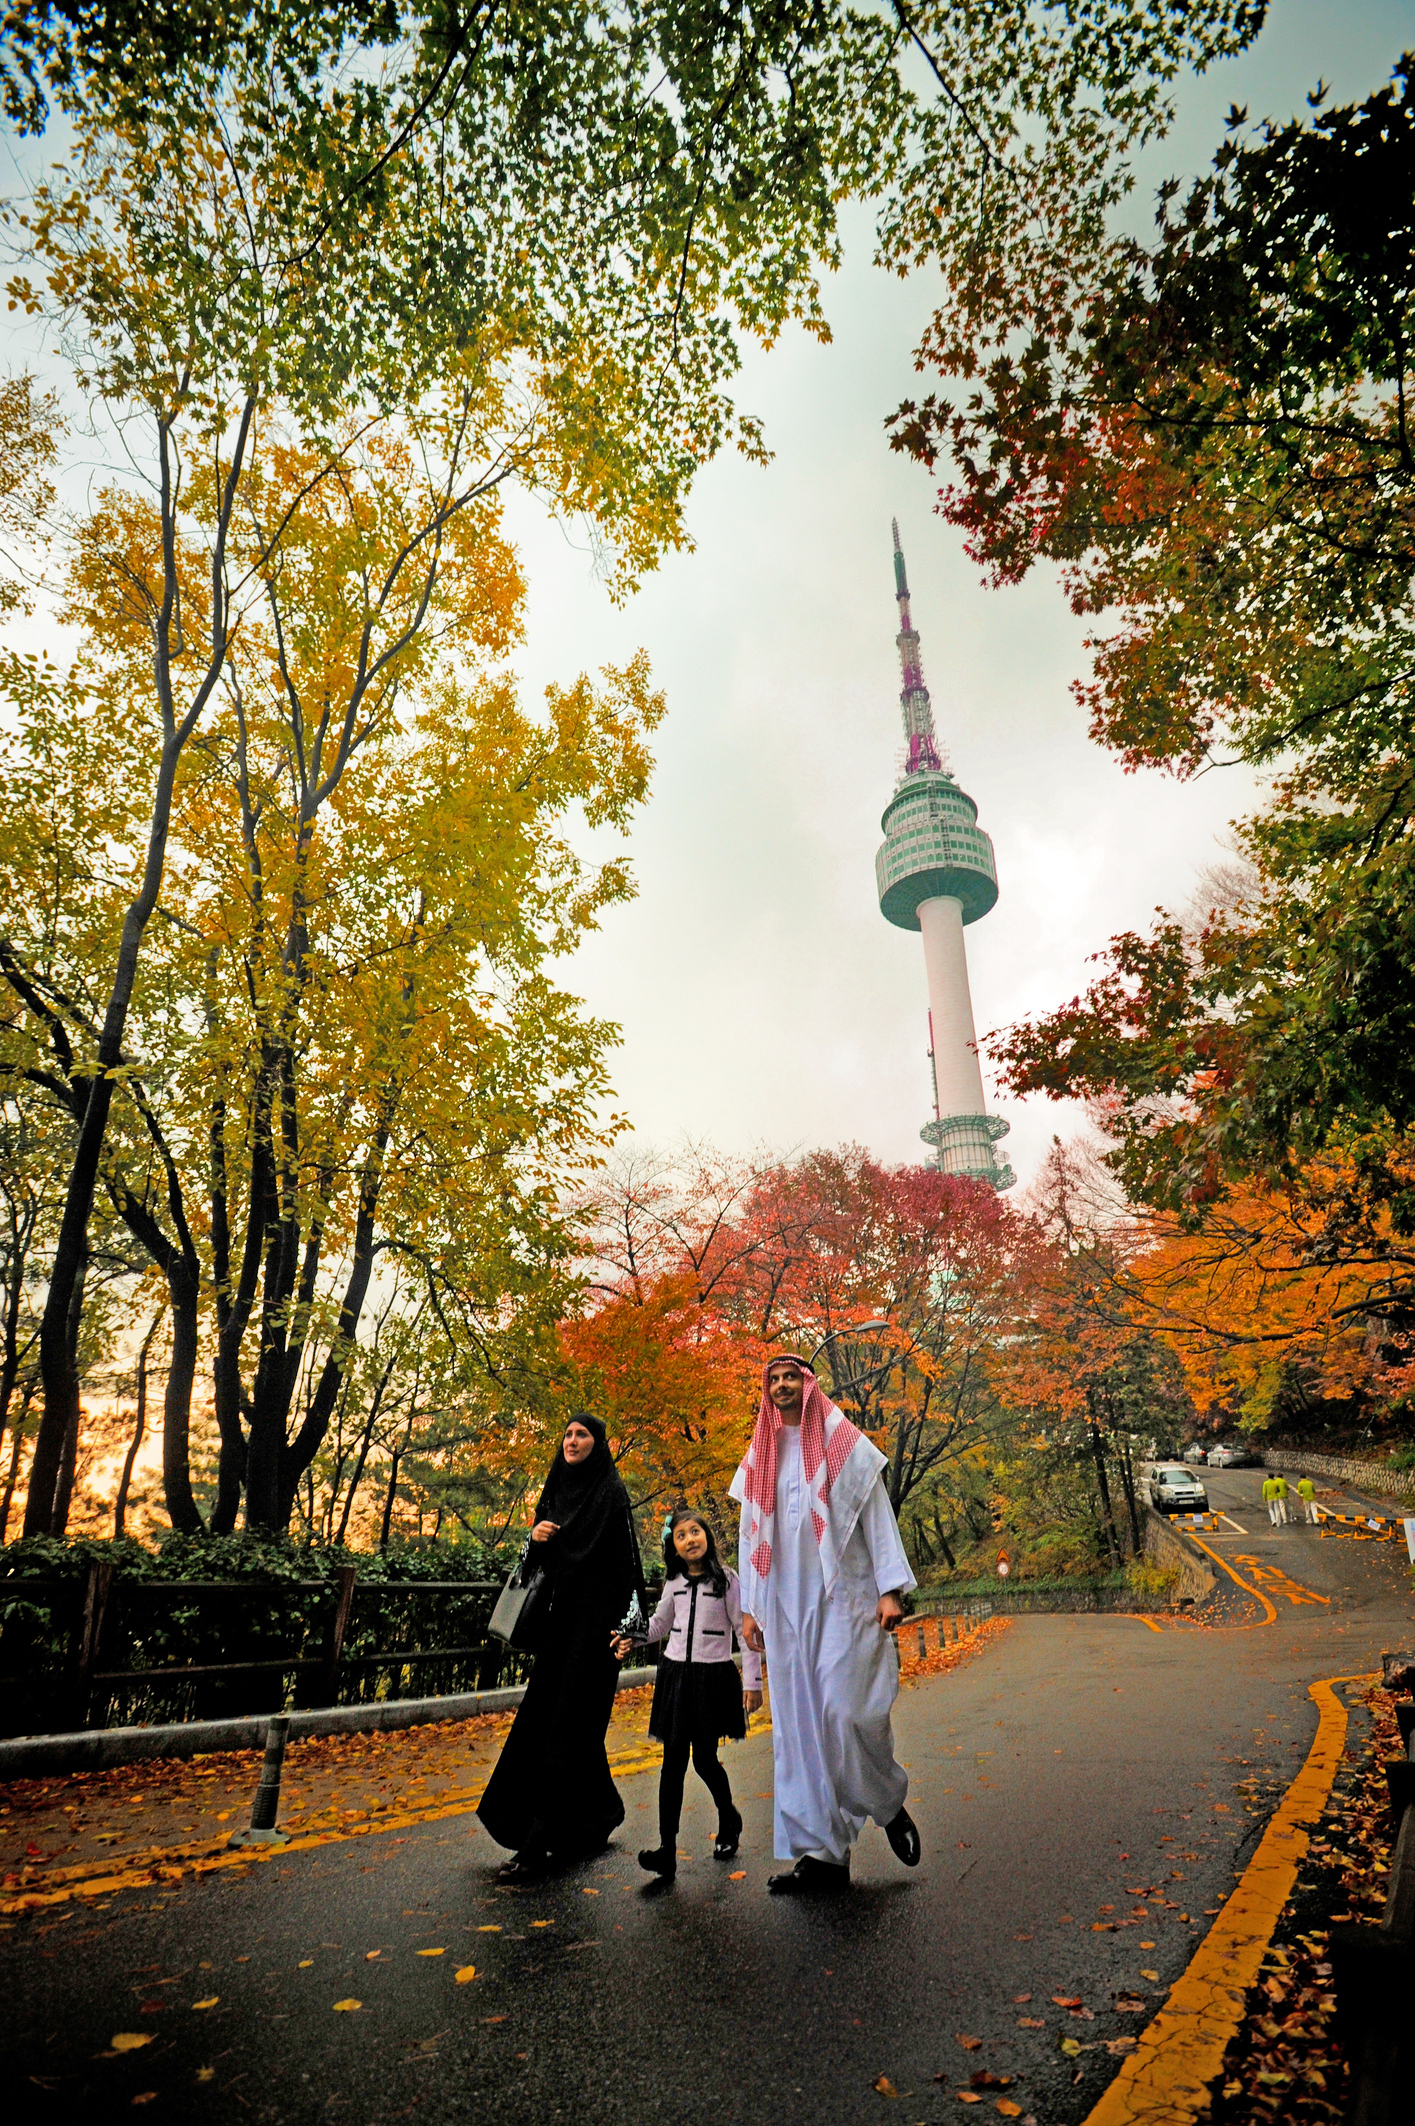 N Seoul Tower for photo stop